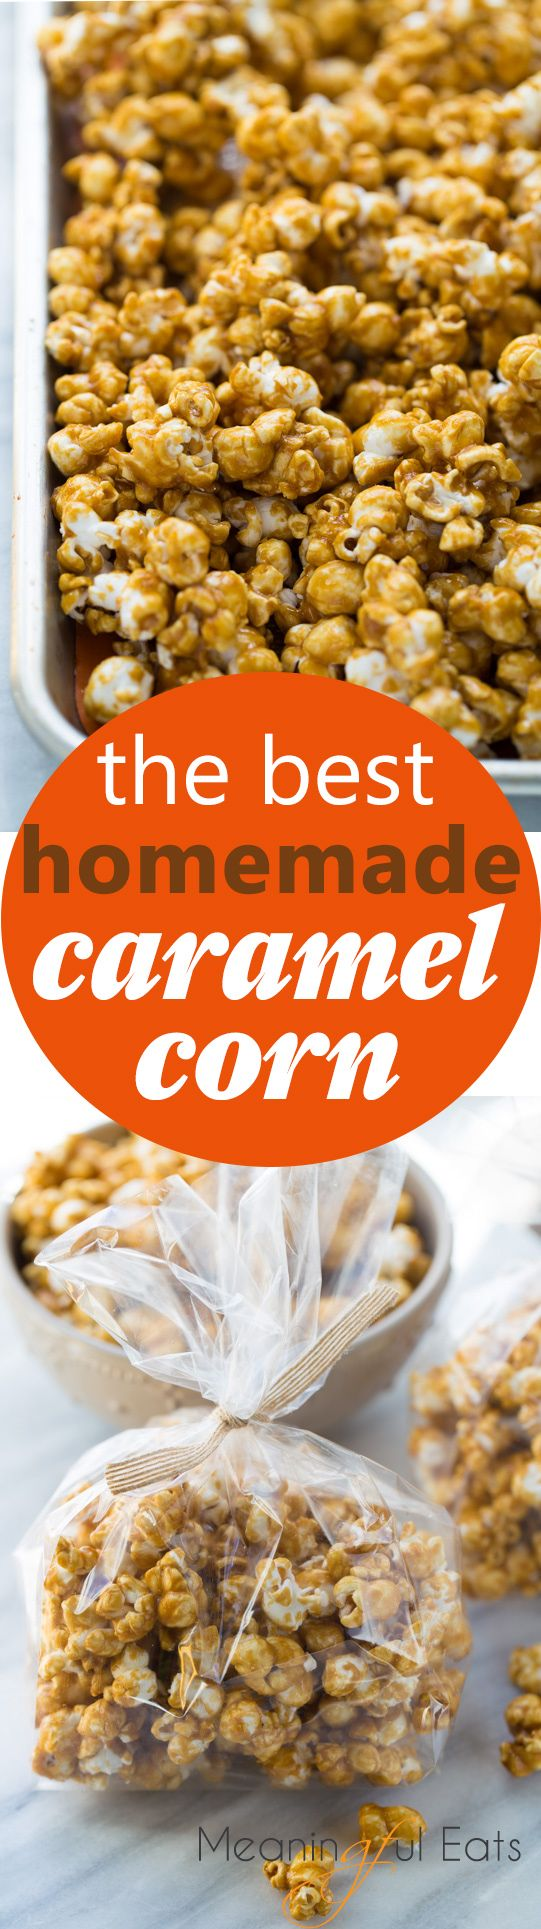 The Best Homemade Caramel Corn! Crispy caramel corn with the perfect mix of…